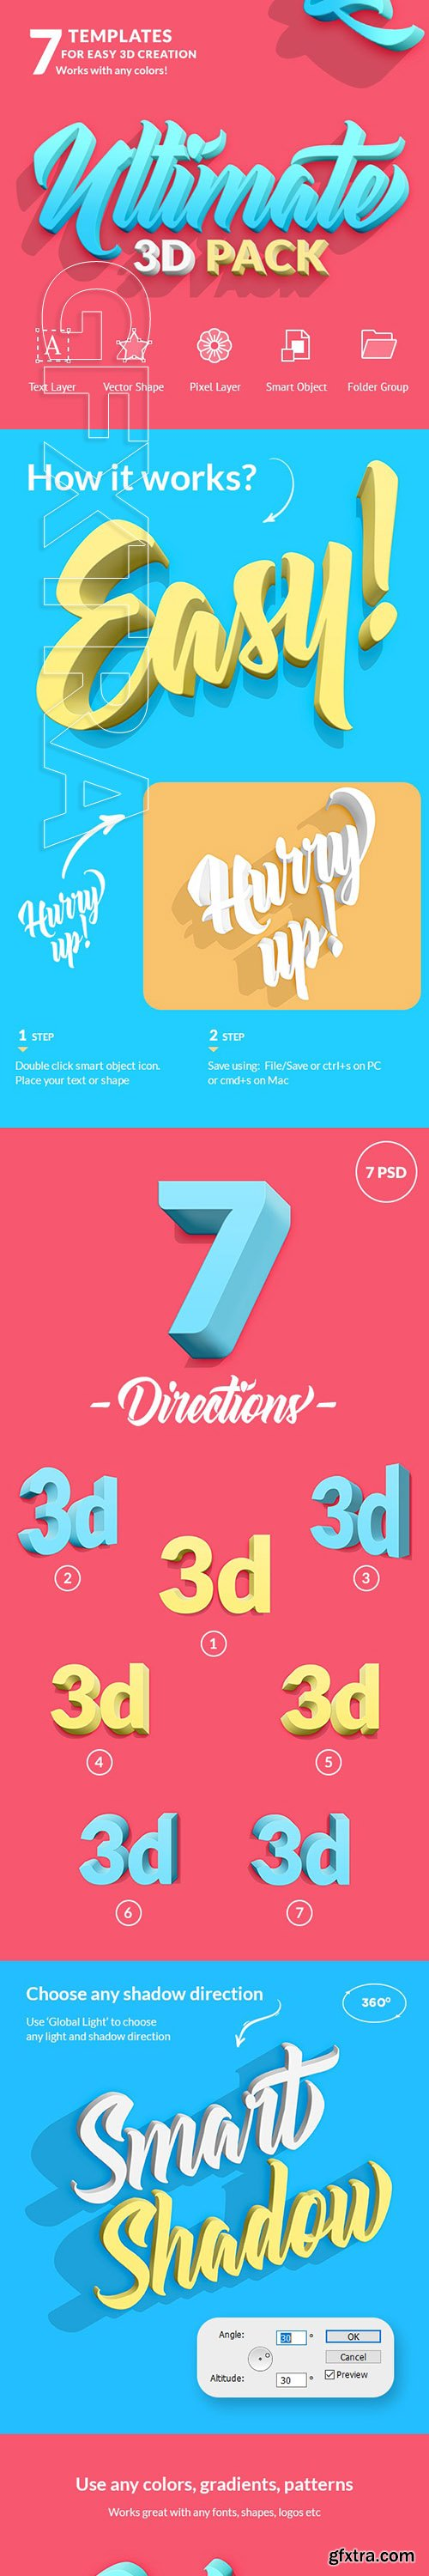 GraphicRiver - Ultimate 3D Pack 24764941